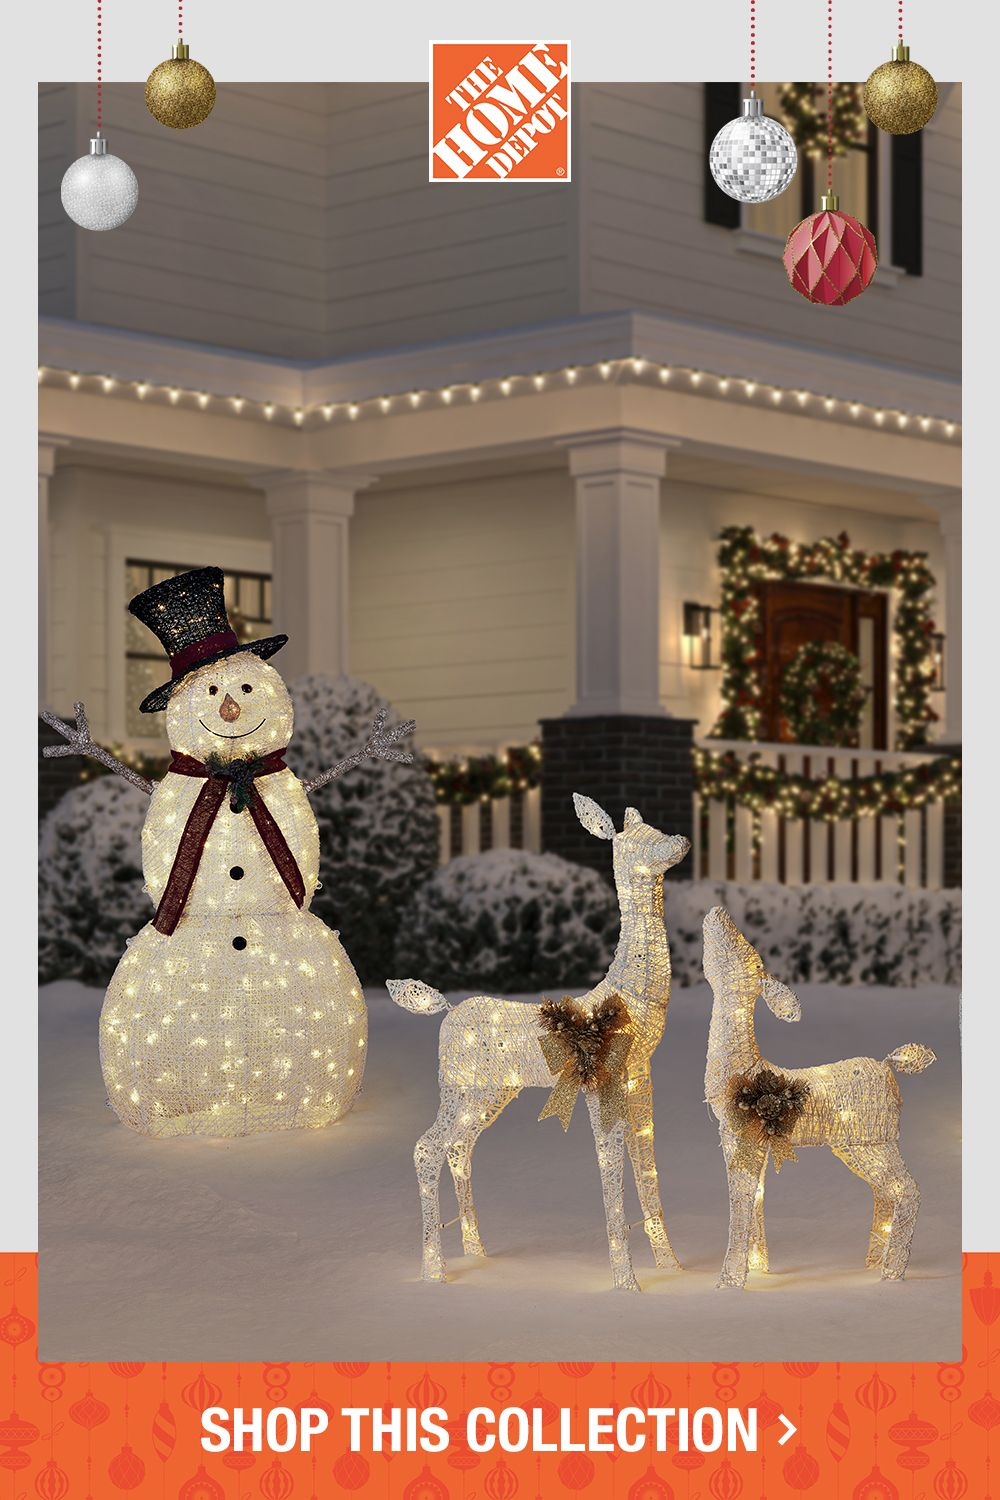 Complete Your Holiday Look With Decor From The Home Depot In 2020 Home Depot Christmas Decorations Christmas Decorations Rustic Christmas Tree Inspiration